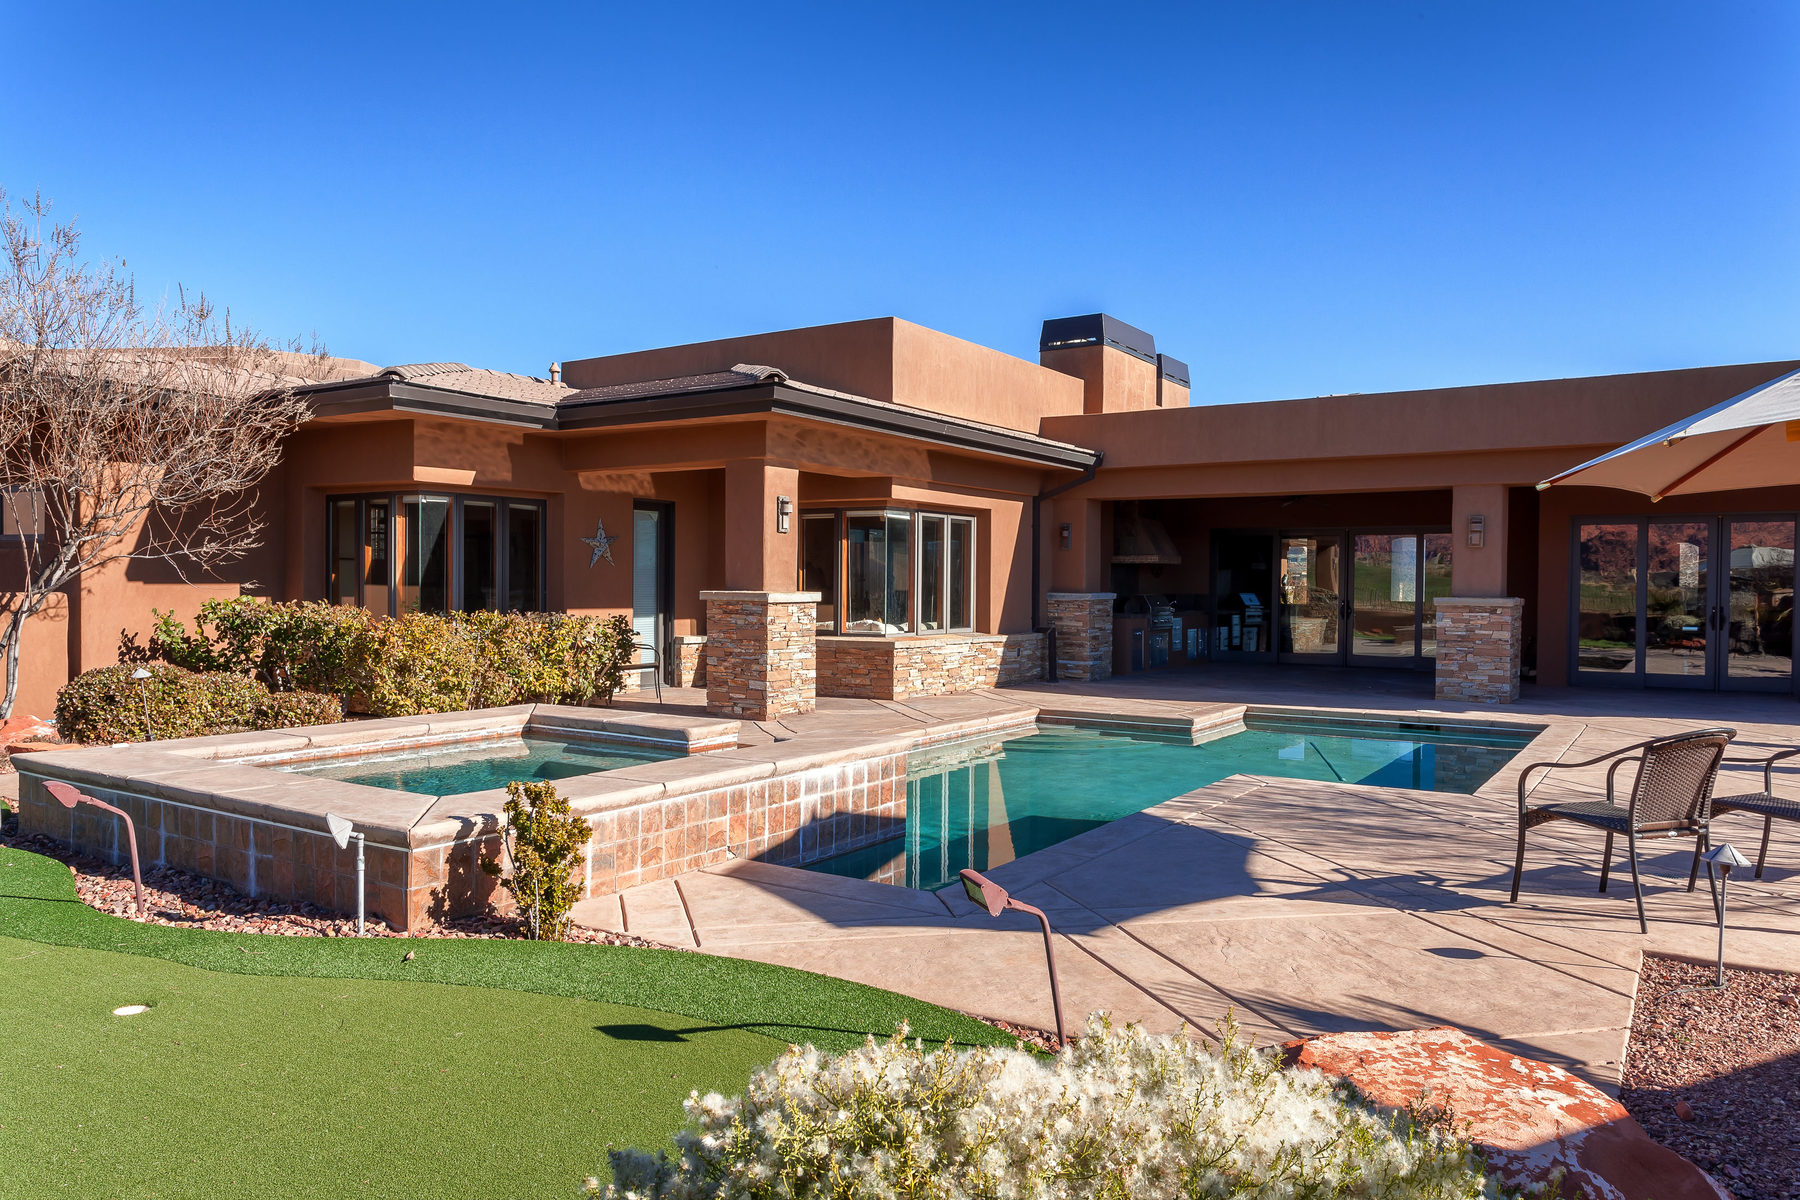 Villa per Vendita alle ore Golf Course Living at its Best 2080 W Rising Sun Dr. St. George, Utah, 84770 Stati Uniti